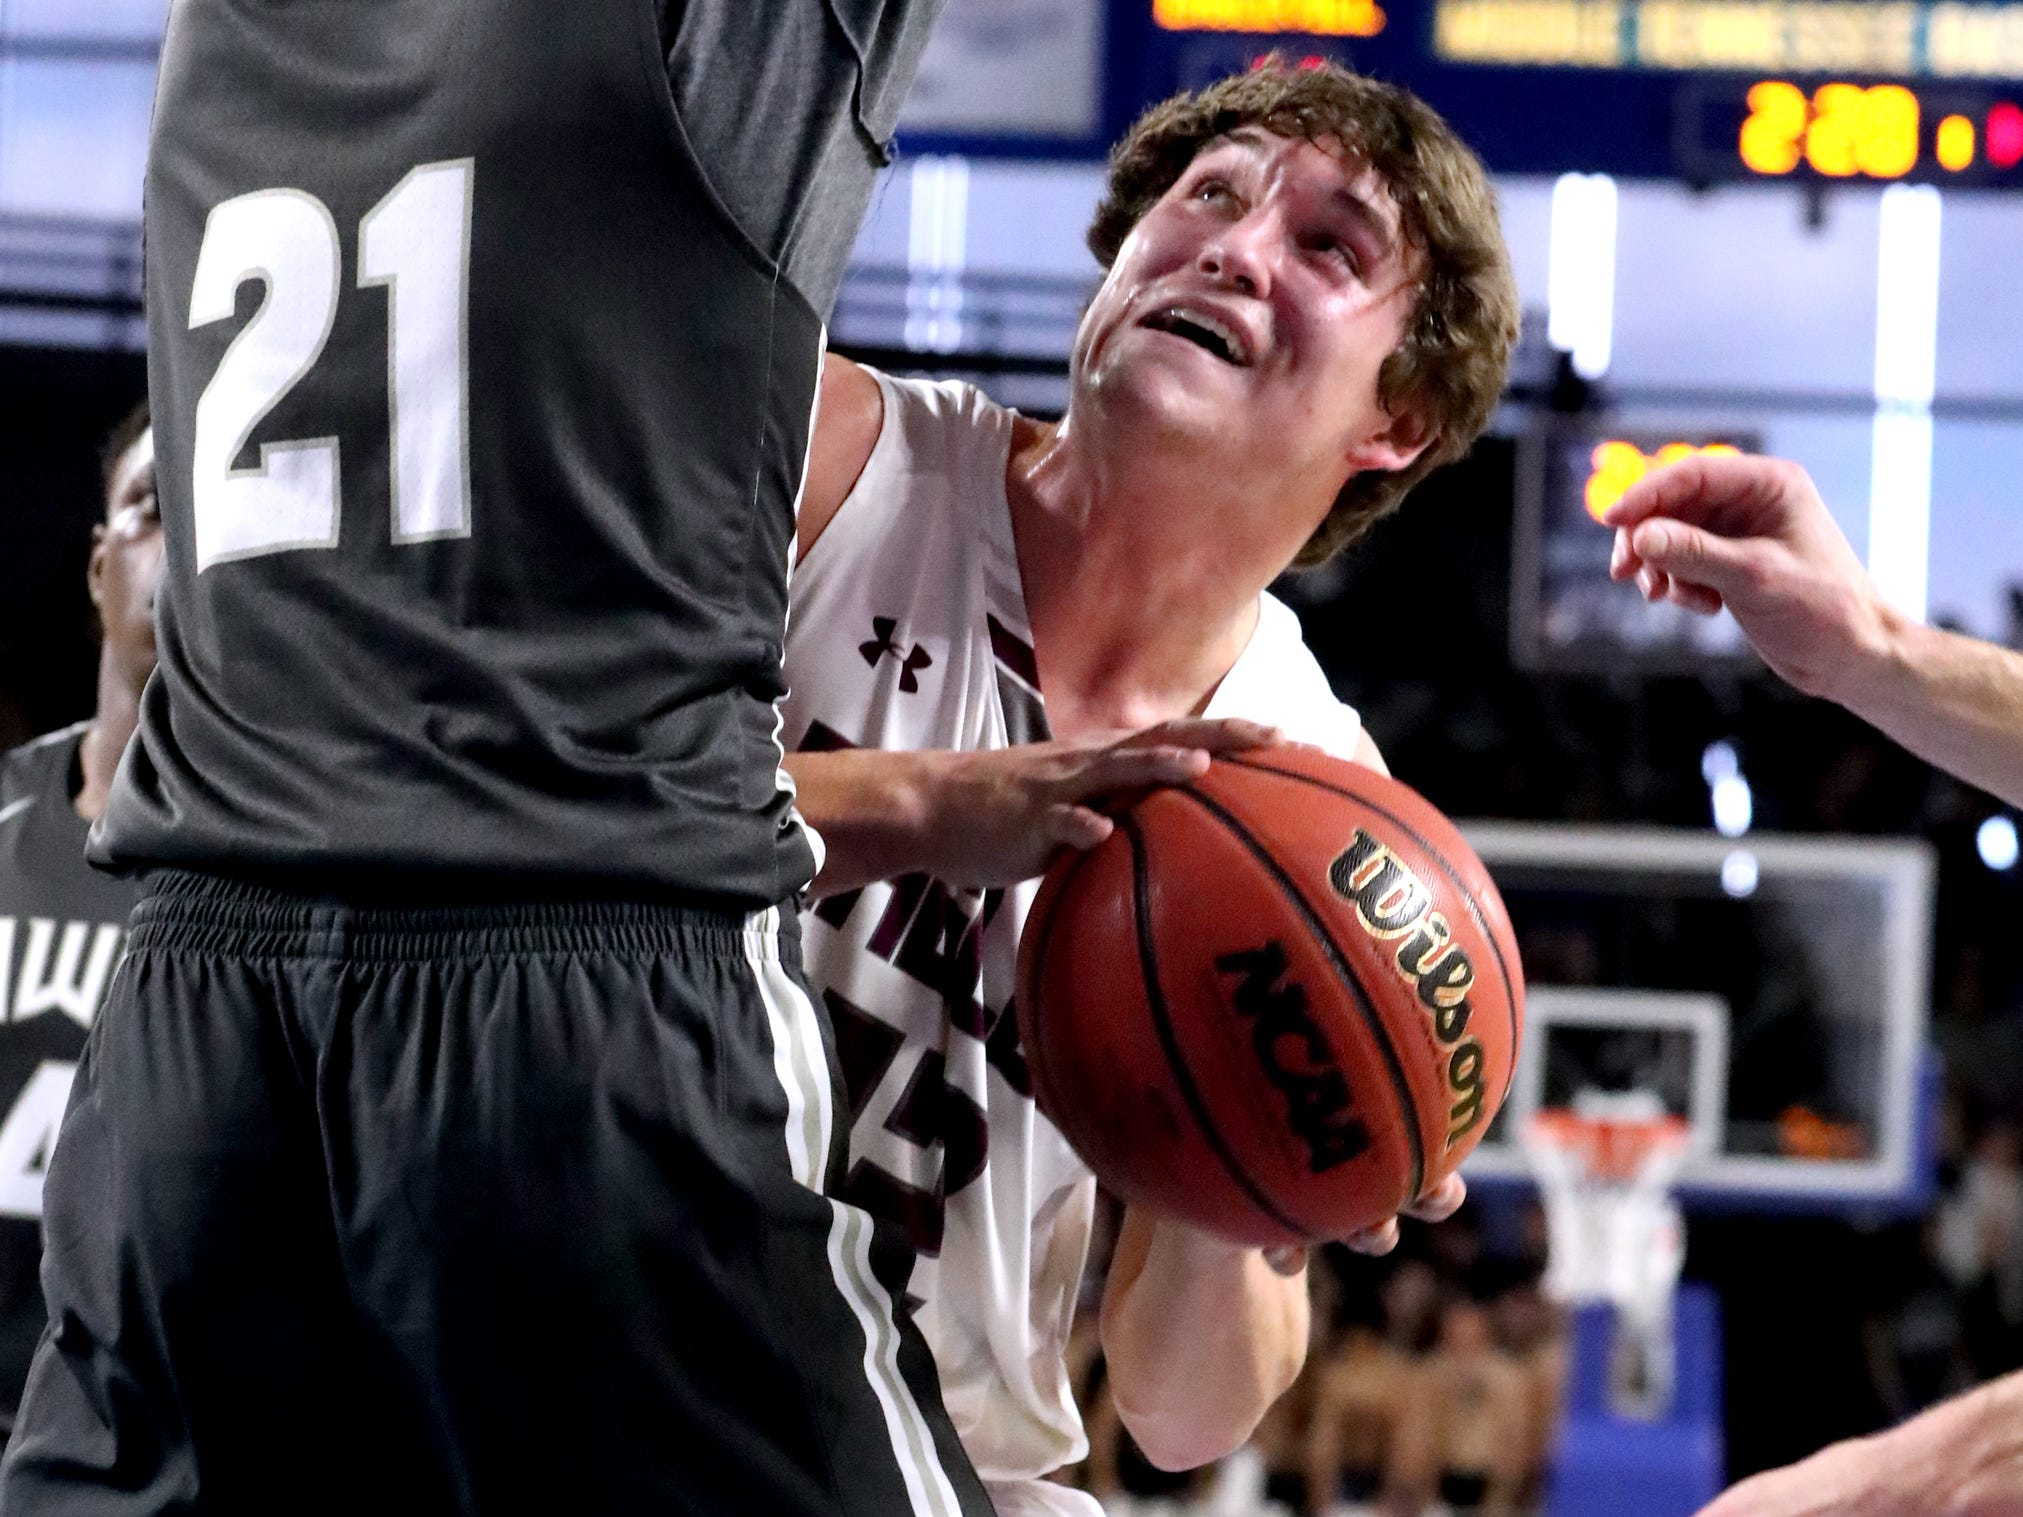 Eagleville's Ethan Cobb (12) shoots the ball as Columbia Academy's Eli Hyle (21) guards him during the semifinal round of the TSSAA Class A Boys State Tournament, on Thursday, March 15, 2019, at Murphy Center in Murfreesboro, Tenn.